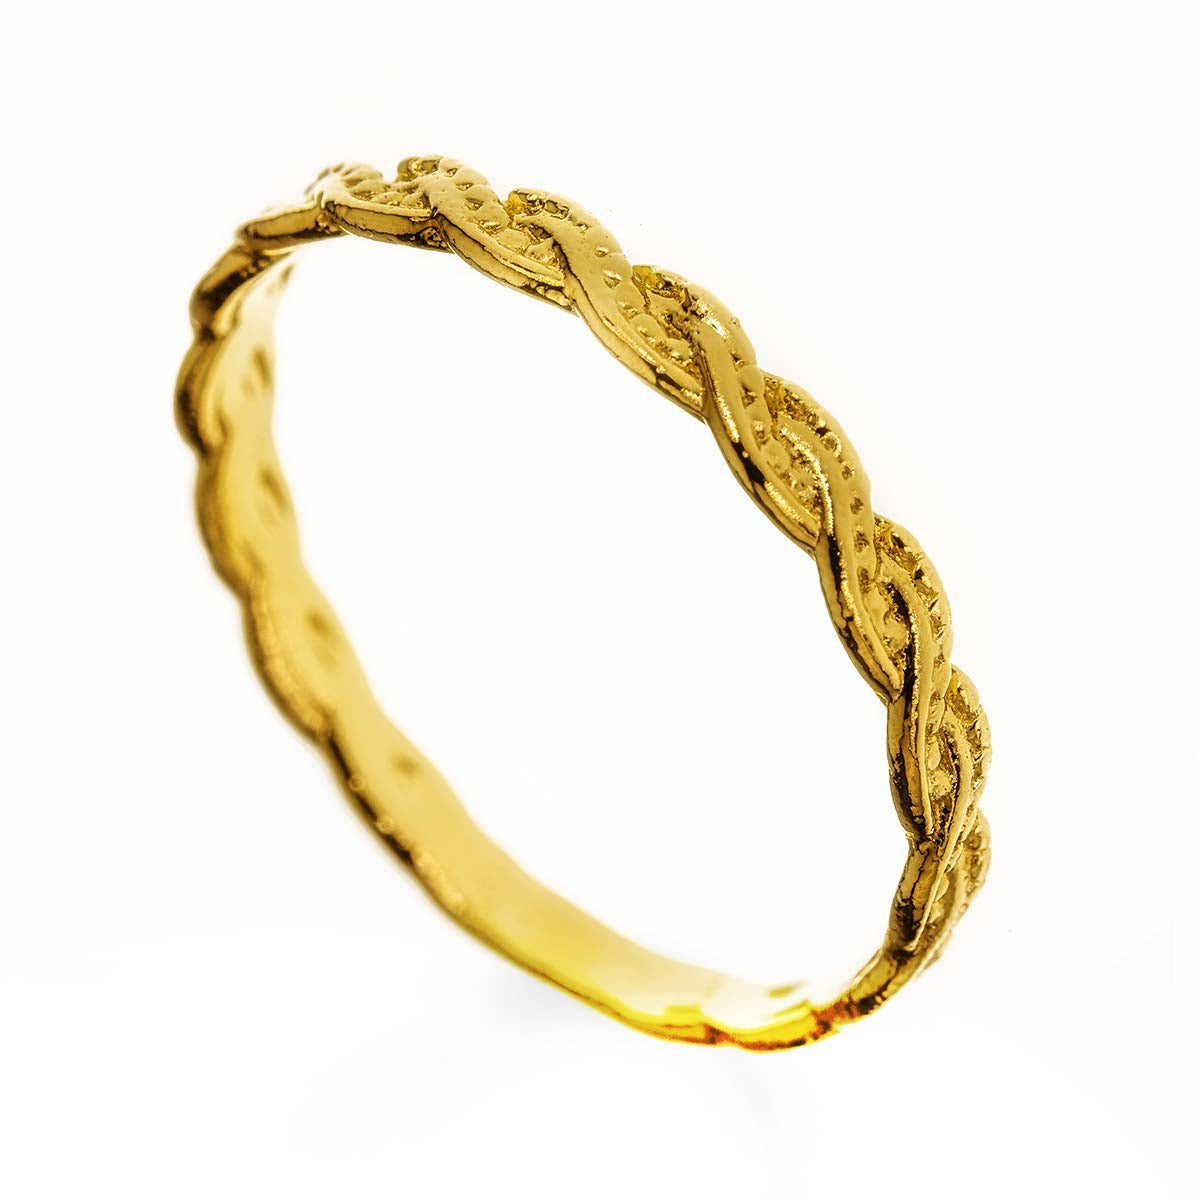 Knot Twist 14k Gold Filled Ring